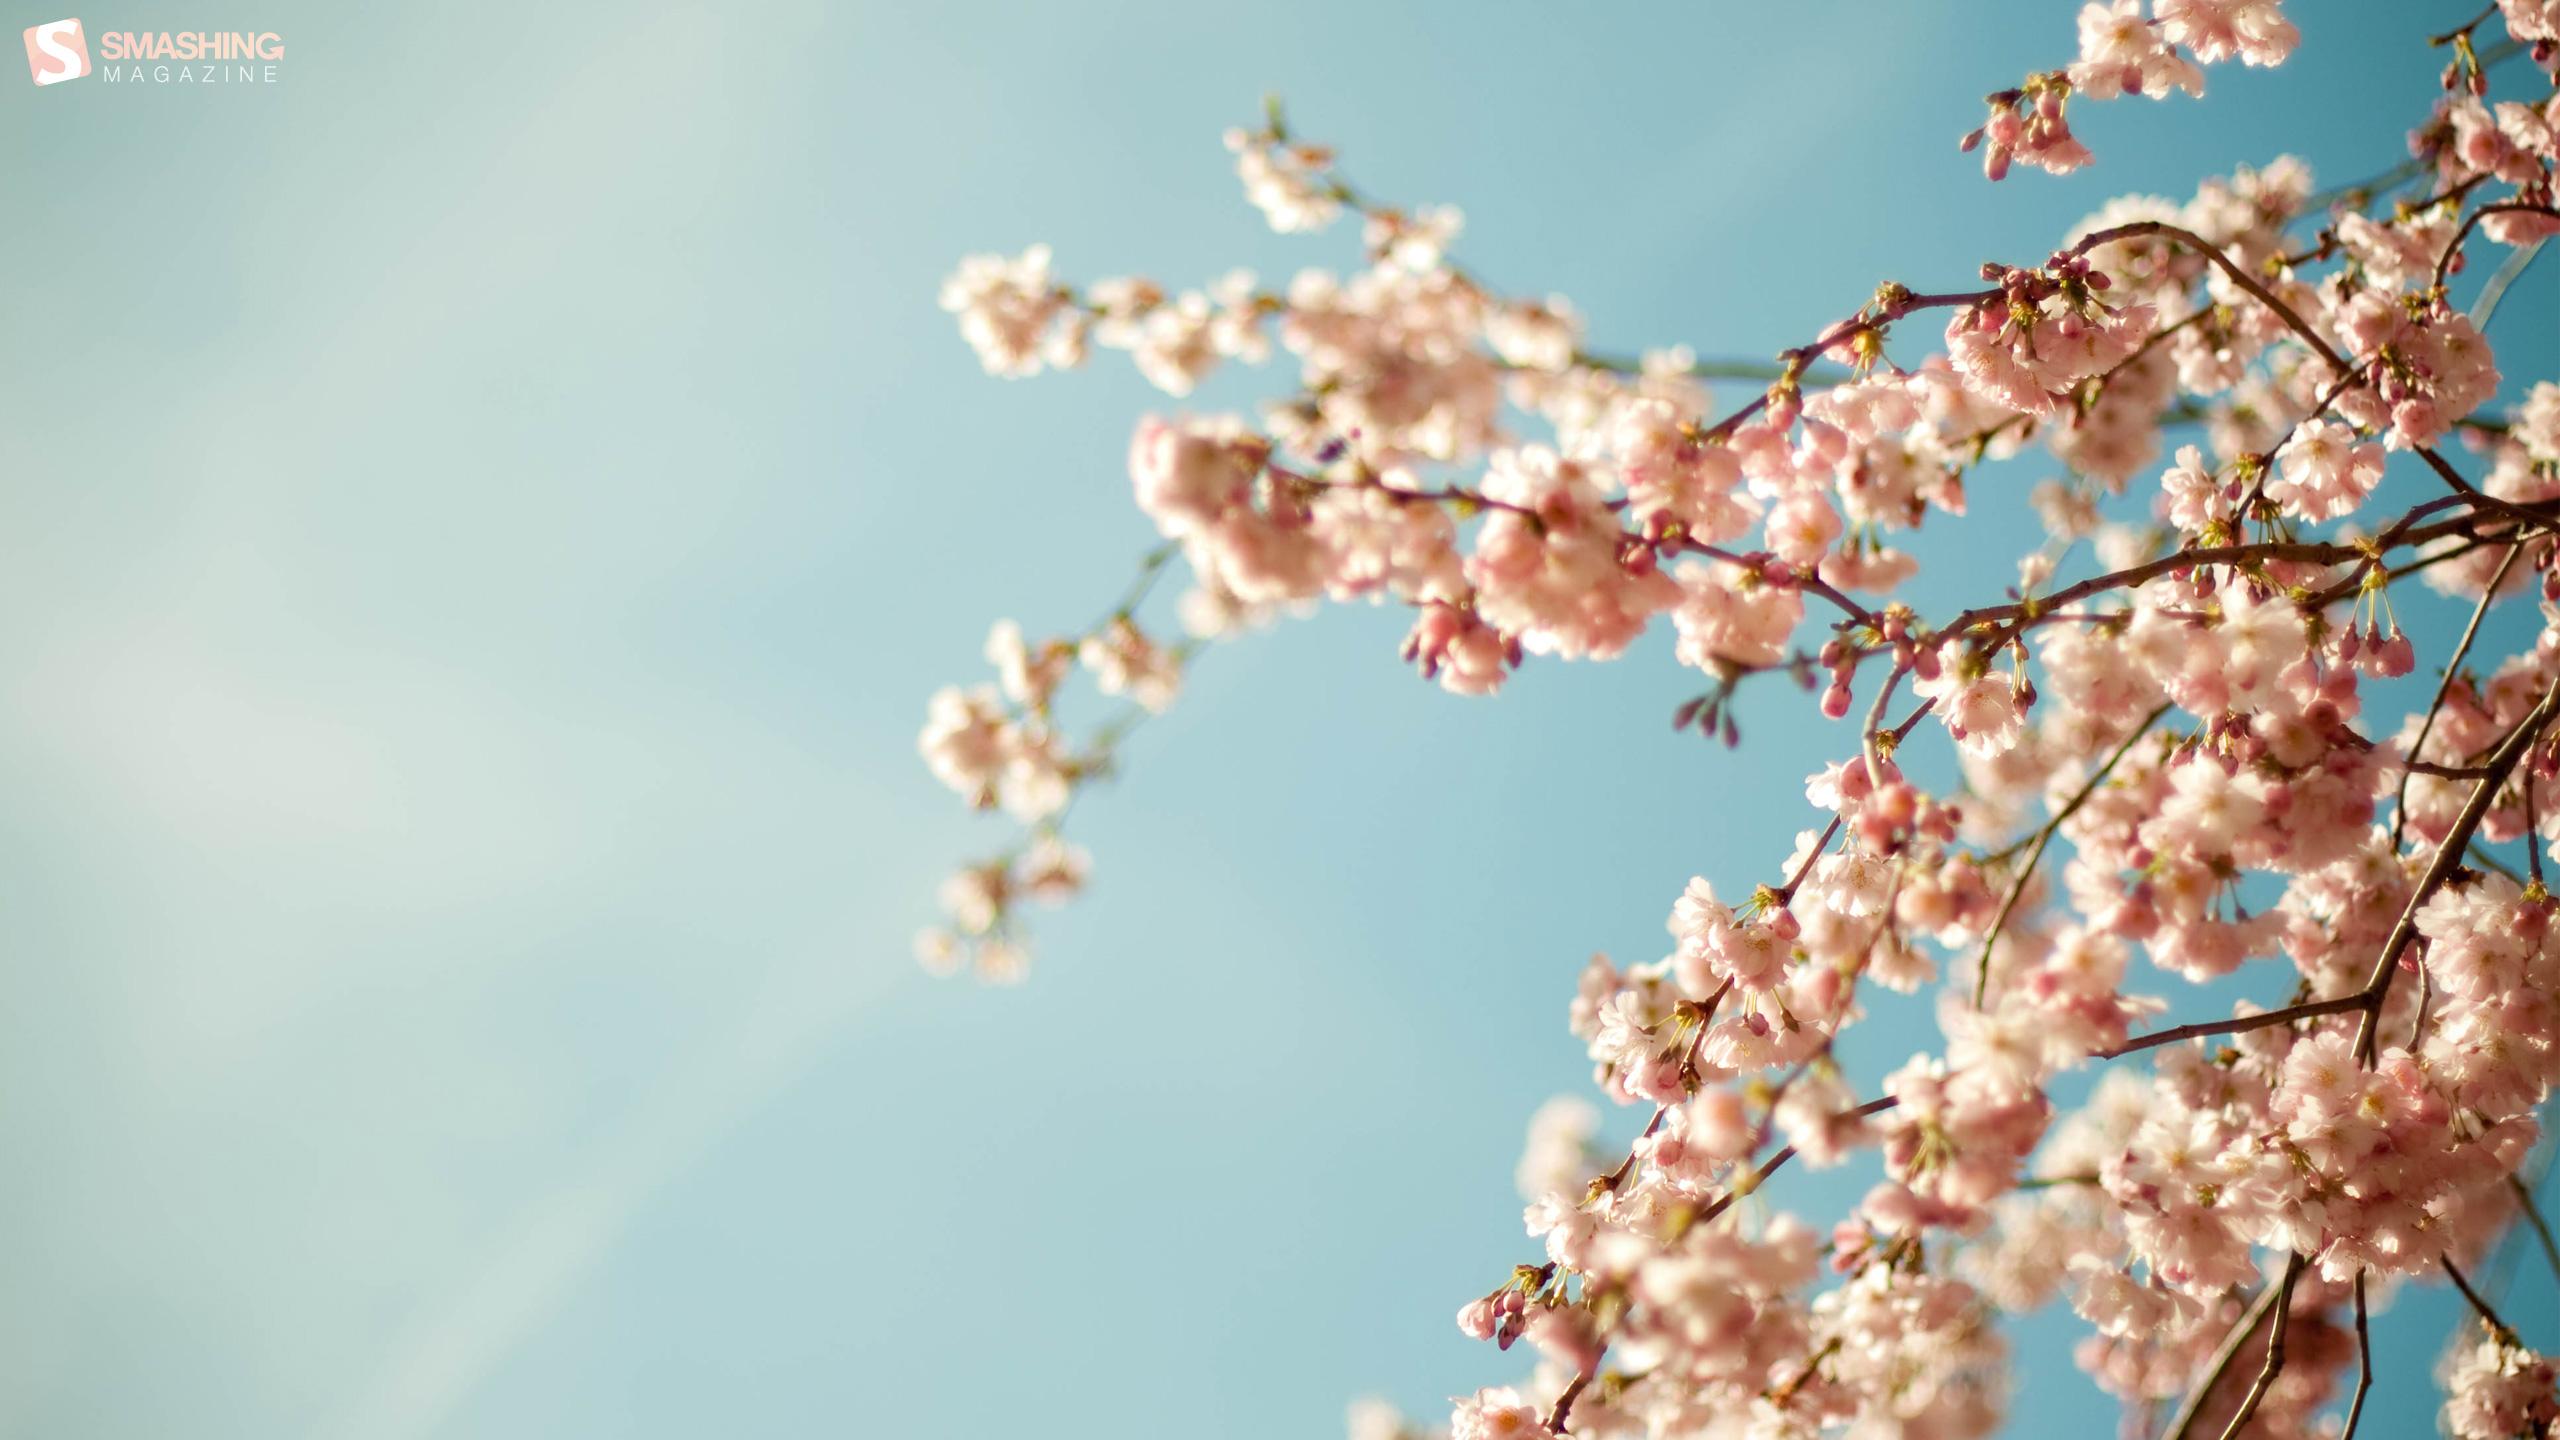 spring is here wallpapers 28068 2560x1440